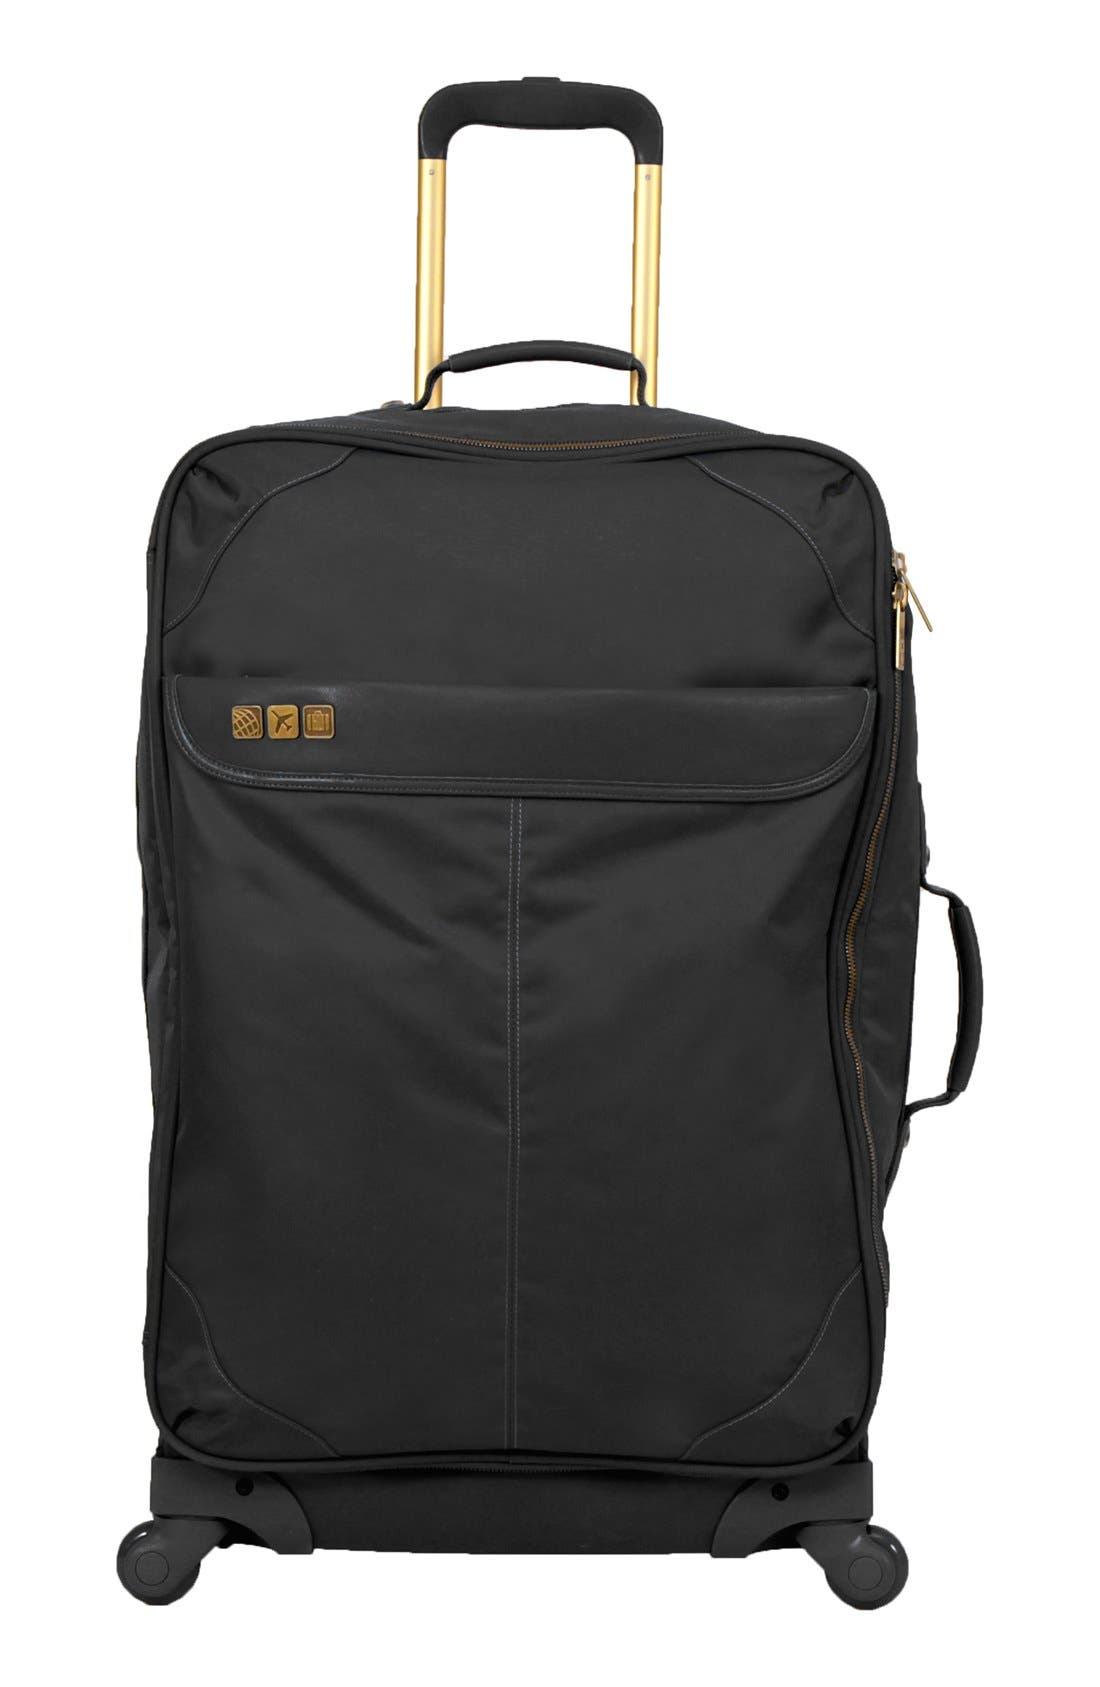 Main Image - Flight 001 'Avionette' Rolling Check-In Suitcase (26 Inch)